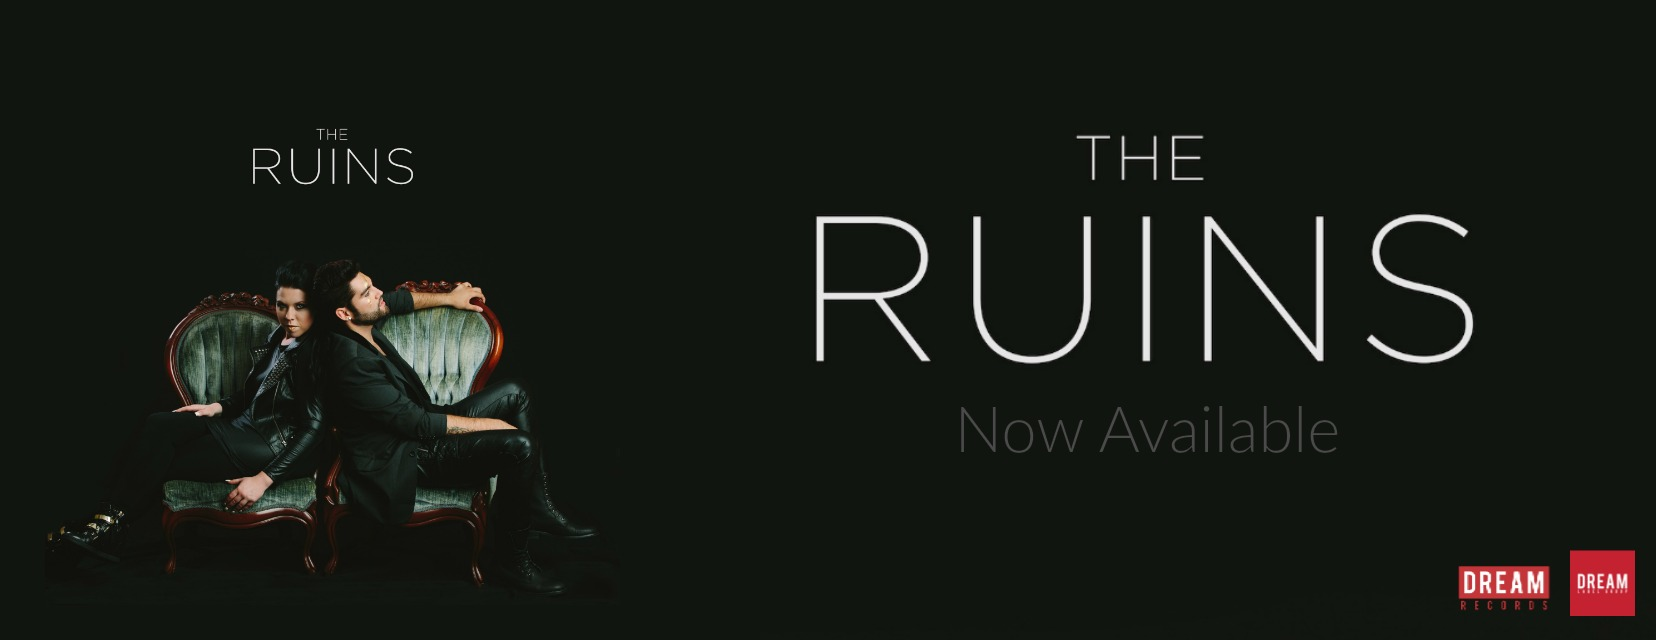 The Ruins Release Debut EP on DREAM Records